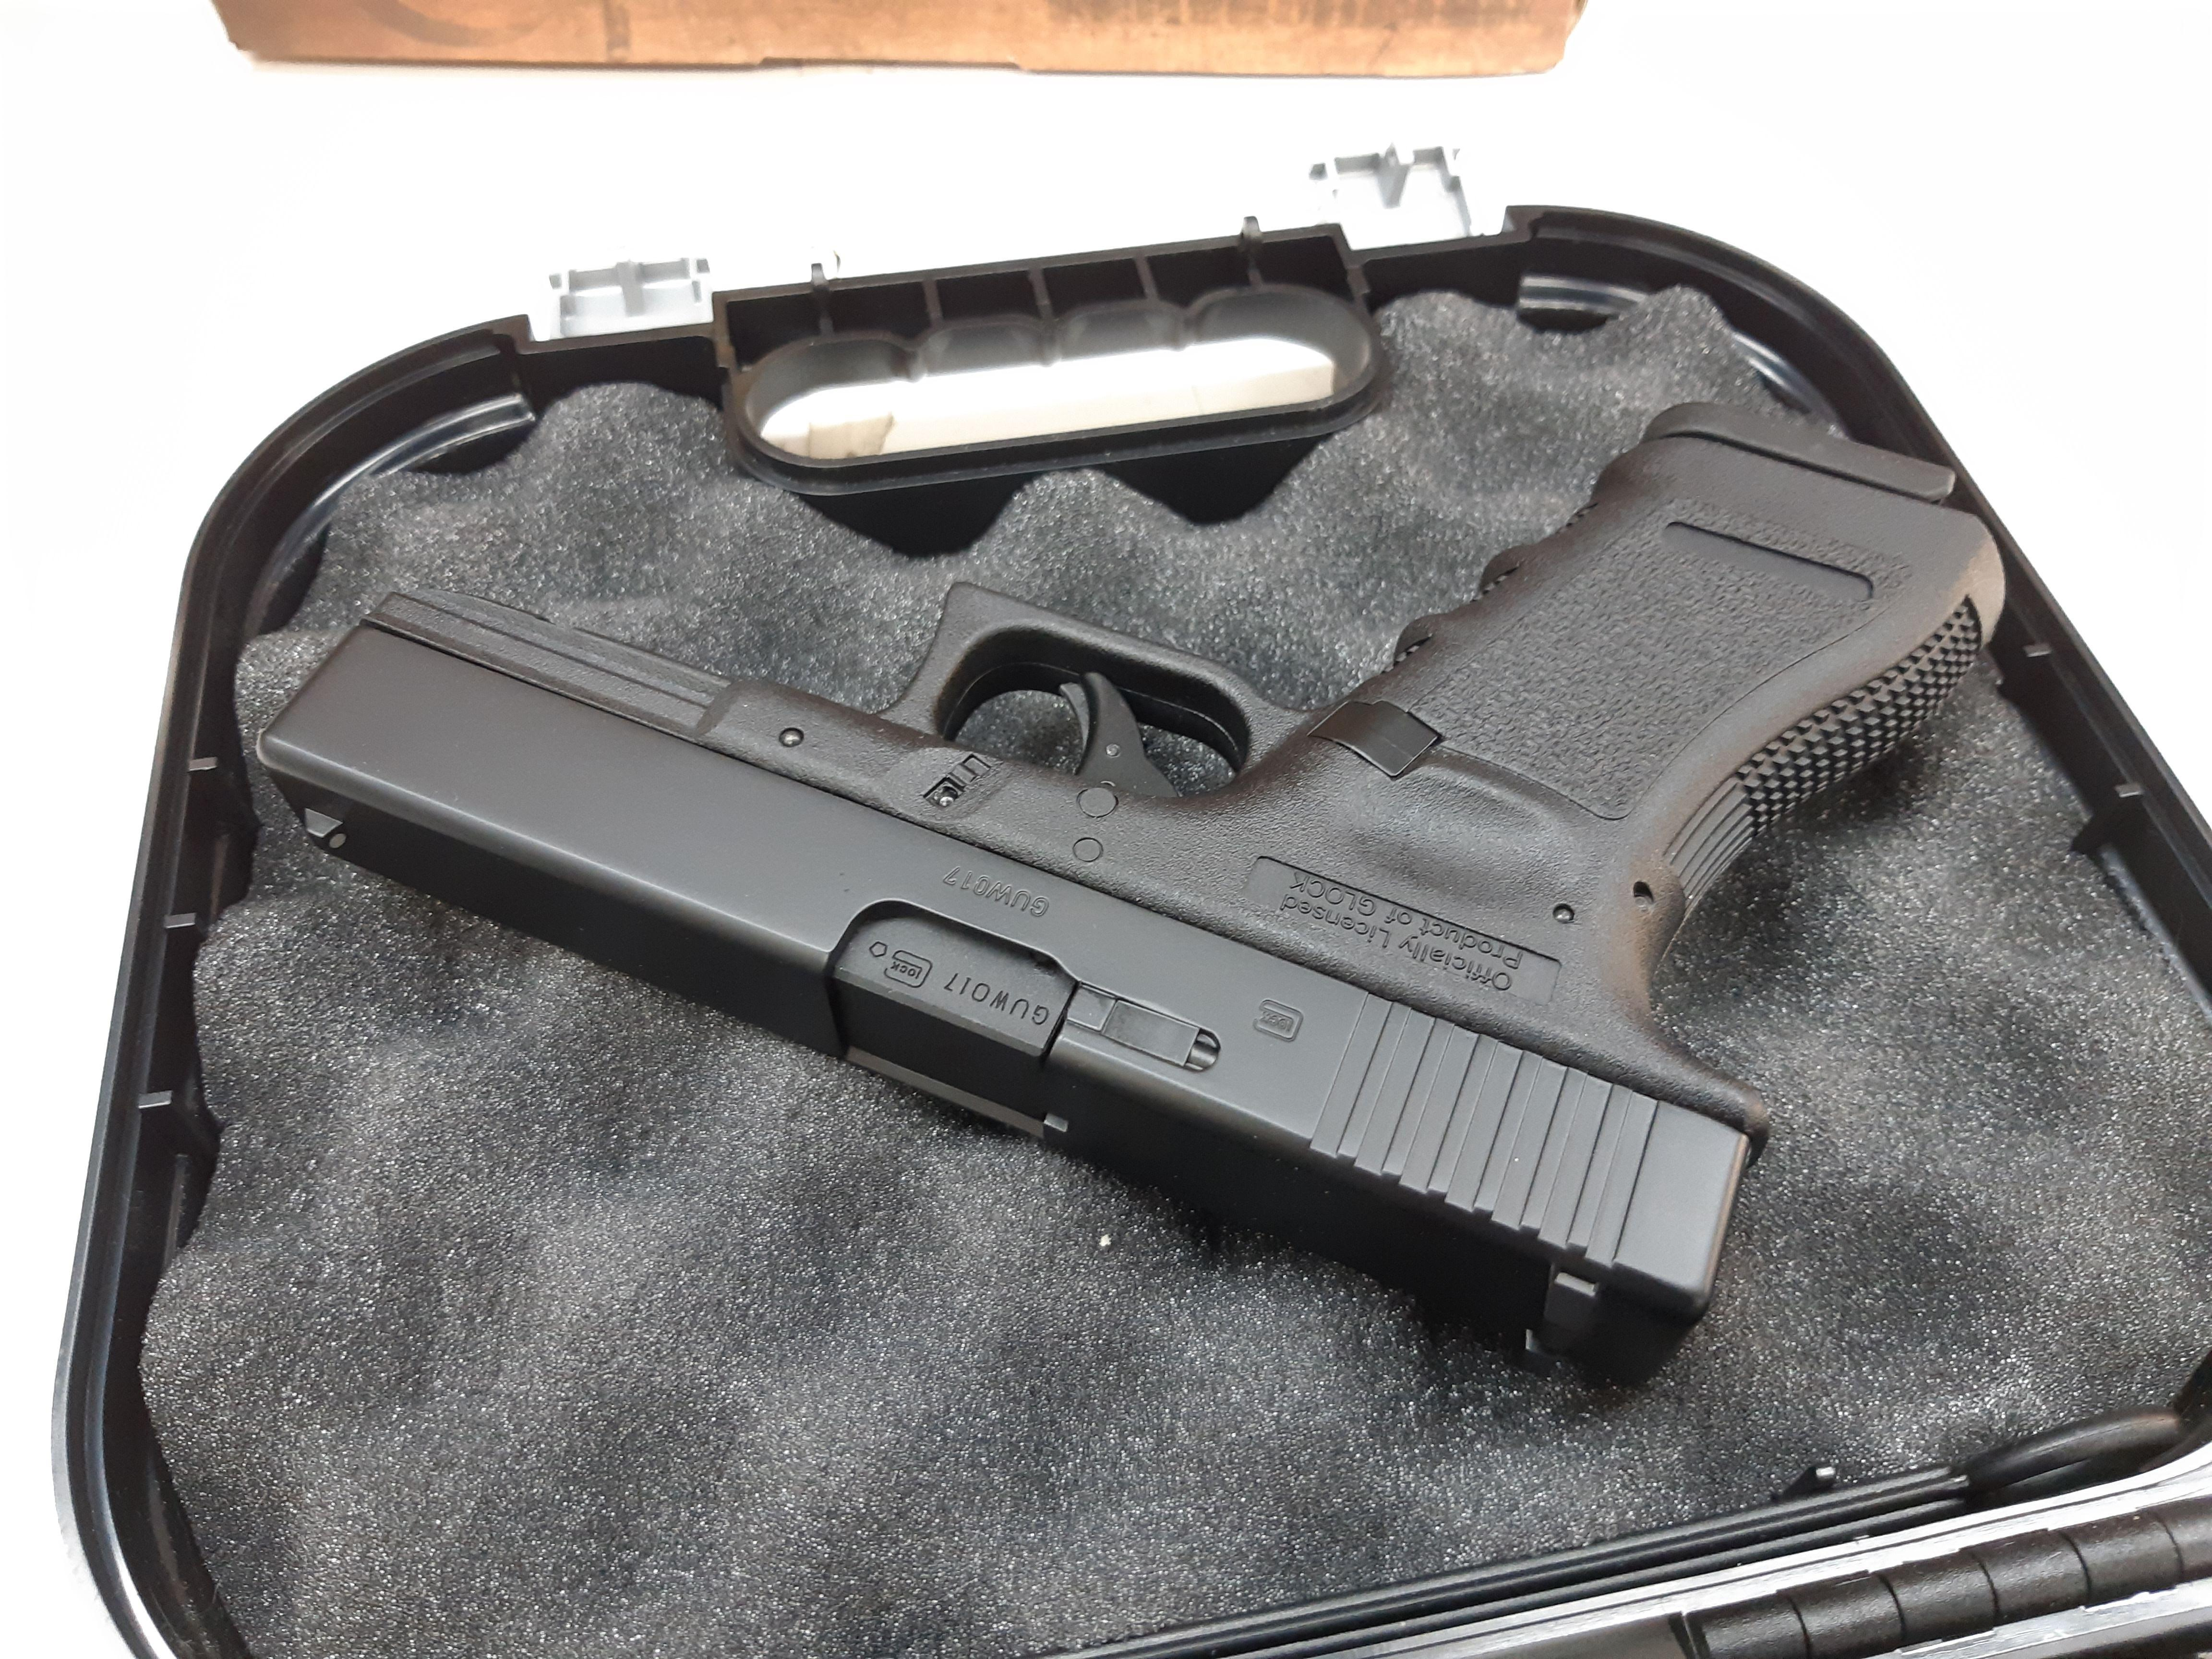 Customer images for Umarex Glock | Pyramyd Air